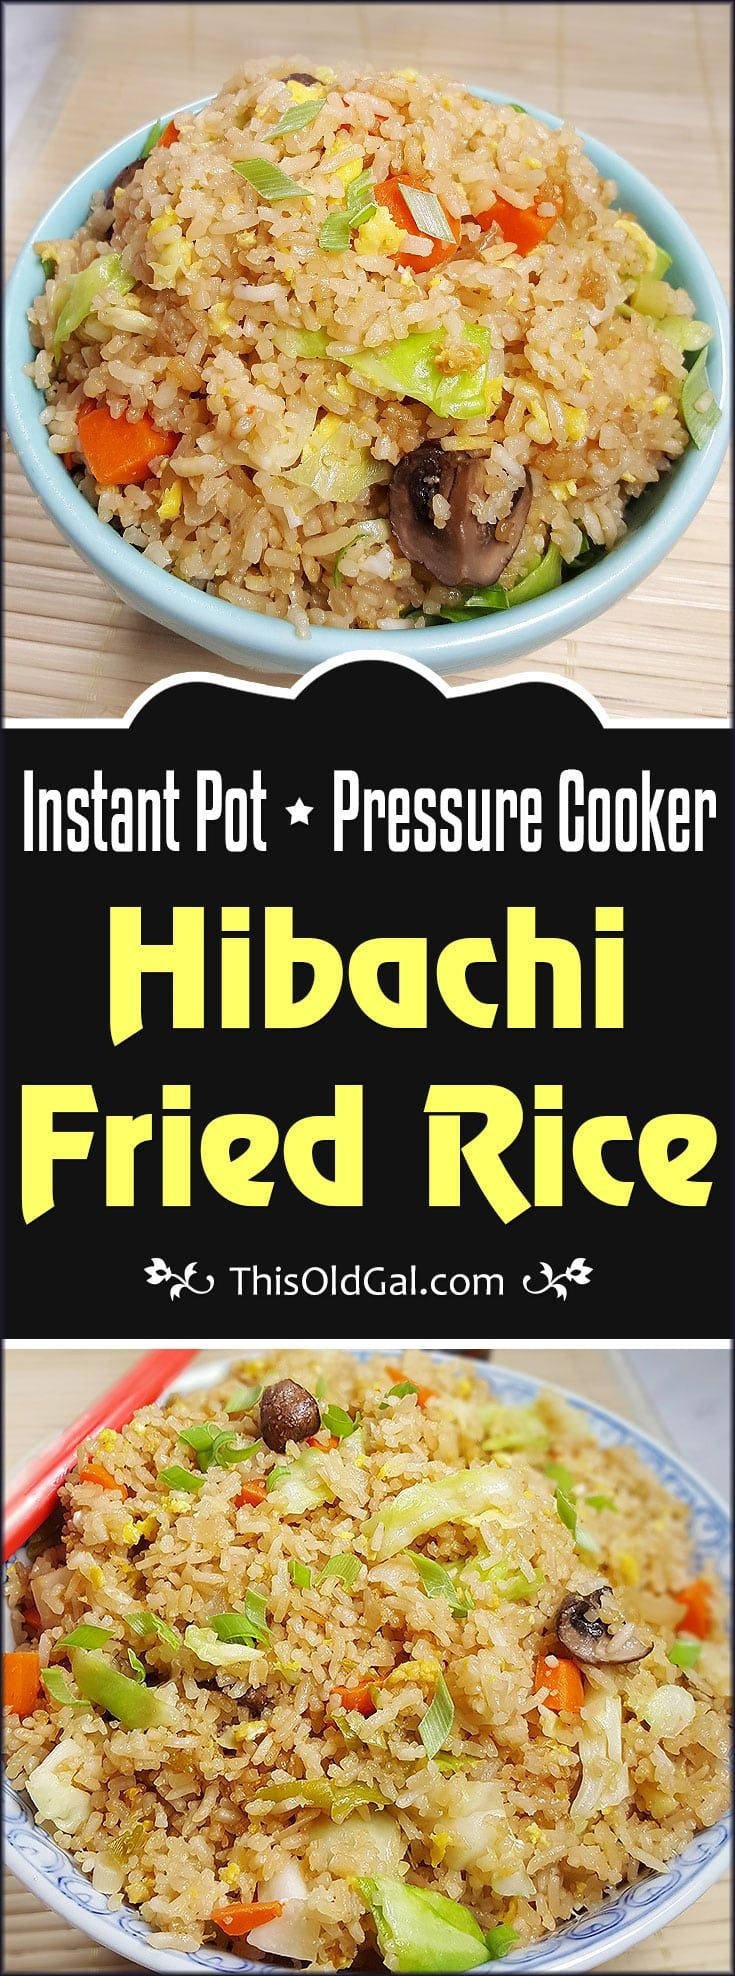 Instant Pot Pressure Cooker Chinese Style Fried Rice cooks quickly in a Pressure…